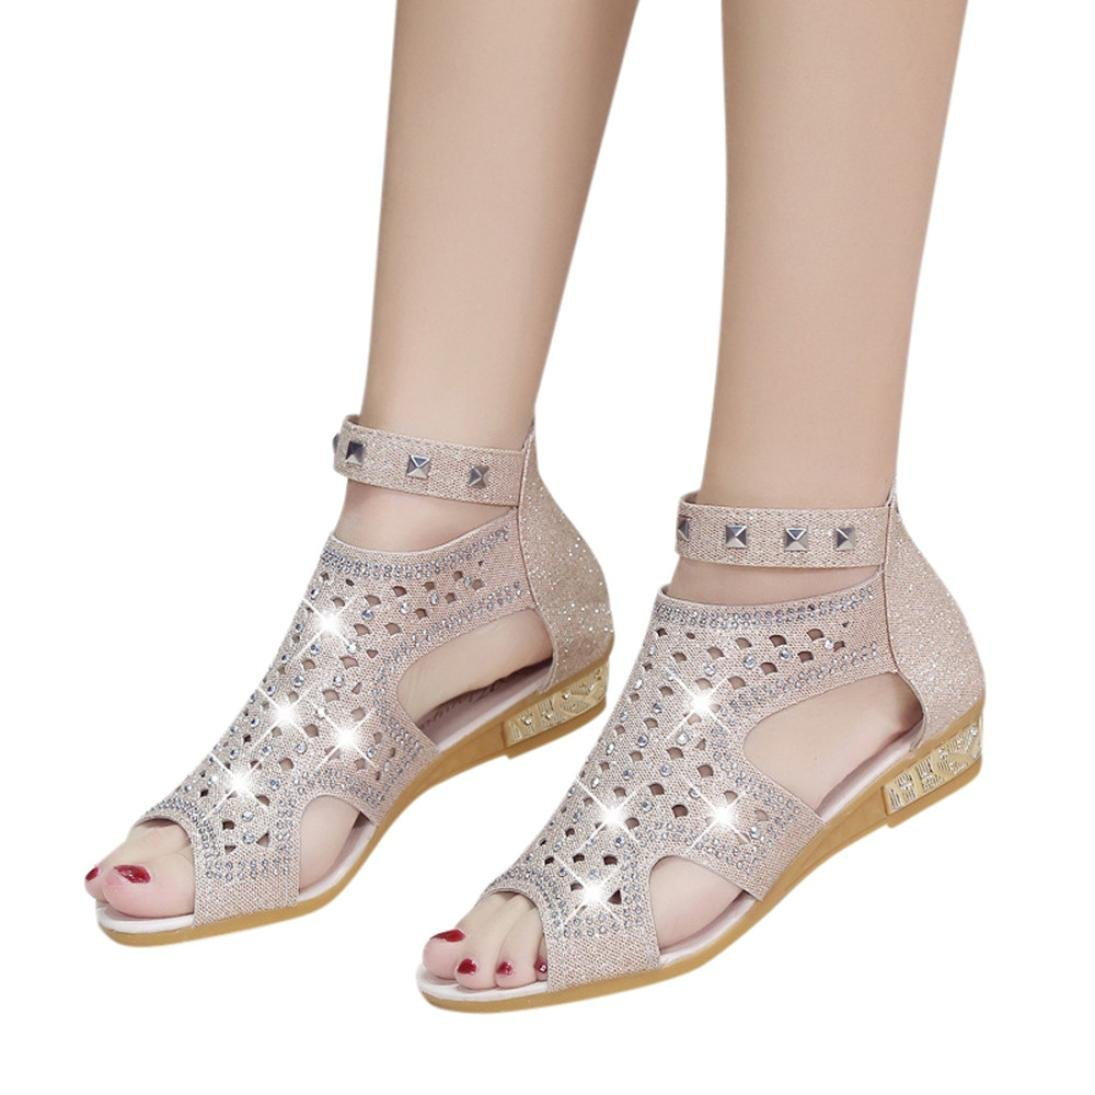 AIMTOPPY HOT Sale, Spring Summer Ladies Women Wedge Sandals Fashion Fish Mouth Hollow Roma Shoes (US:6.5, Beige 2)